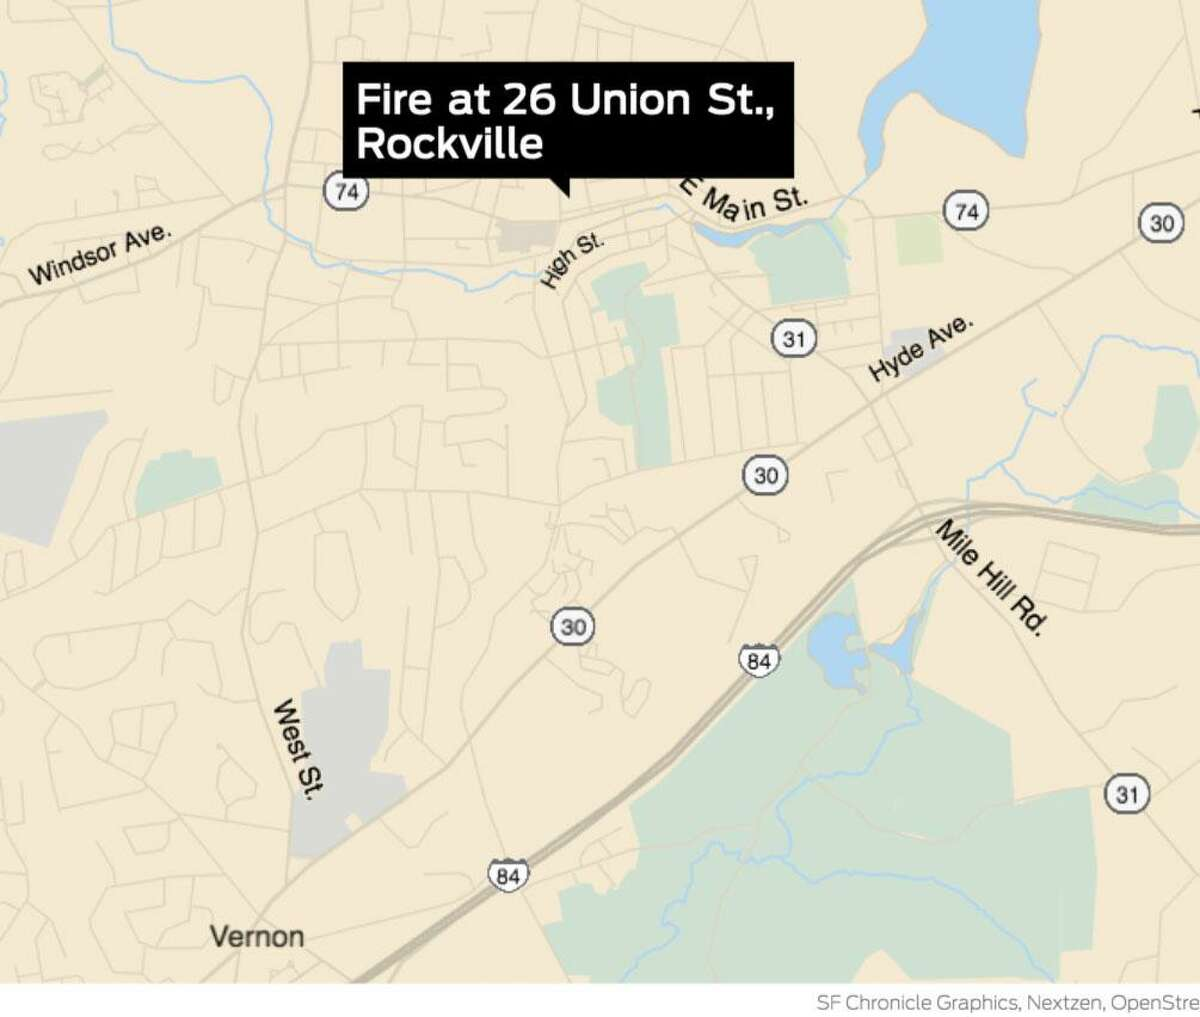 Several people have been rescued from a fire at apartments at 26 Union St. in Rockville Sunday, Dec. 20, according to Vernon Police.